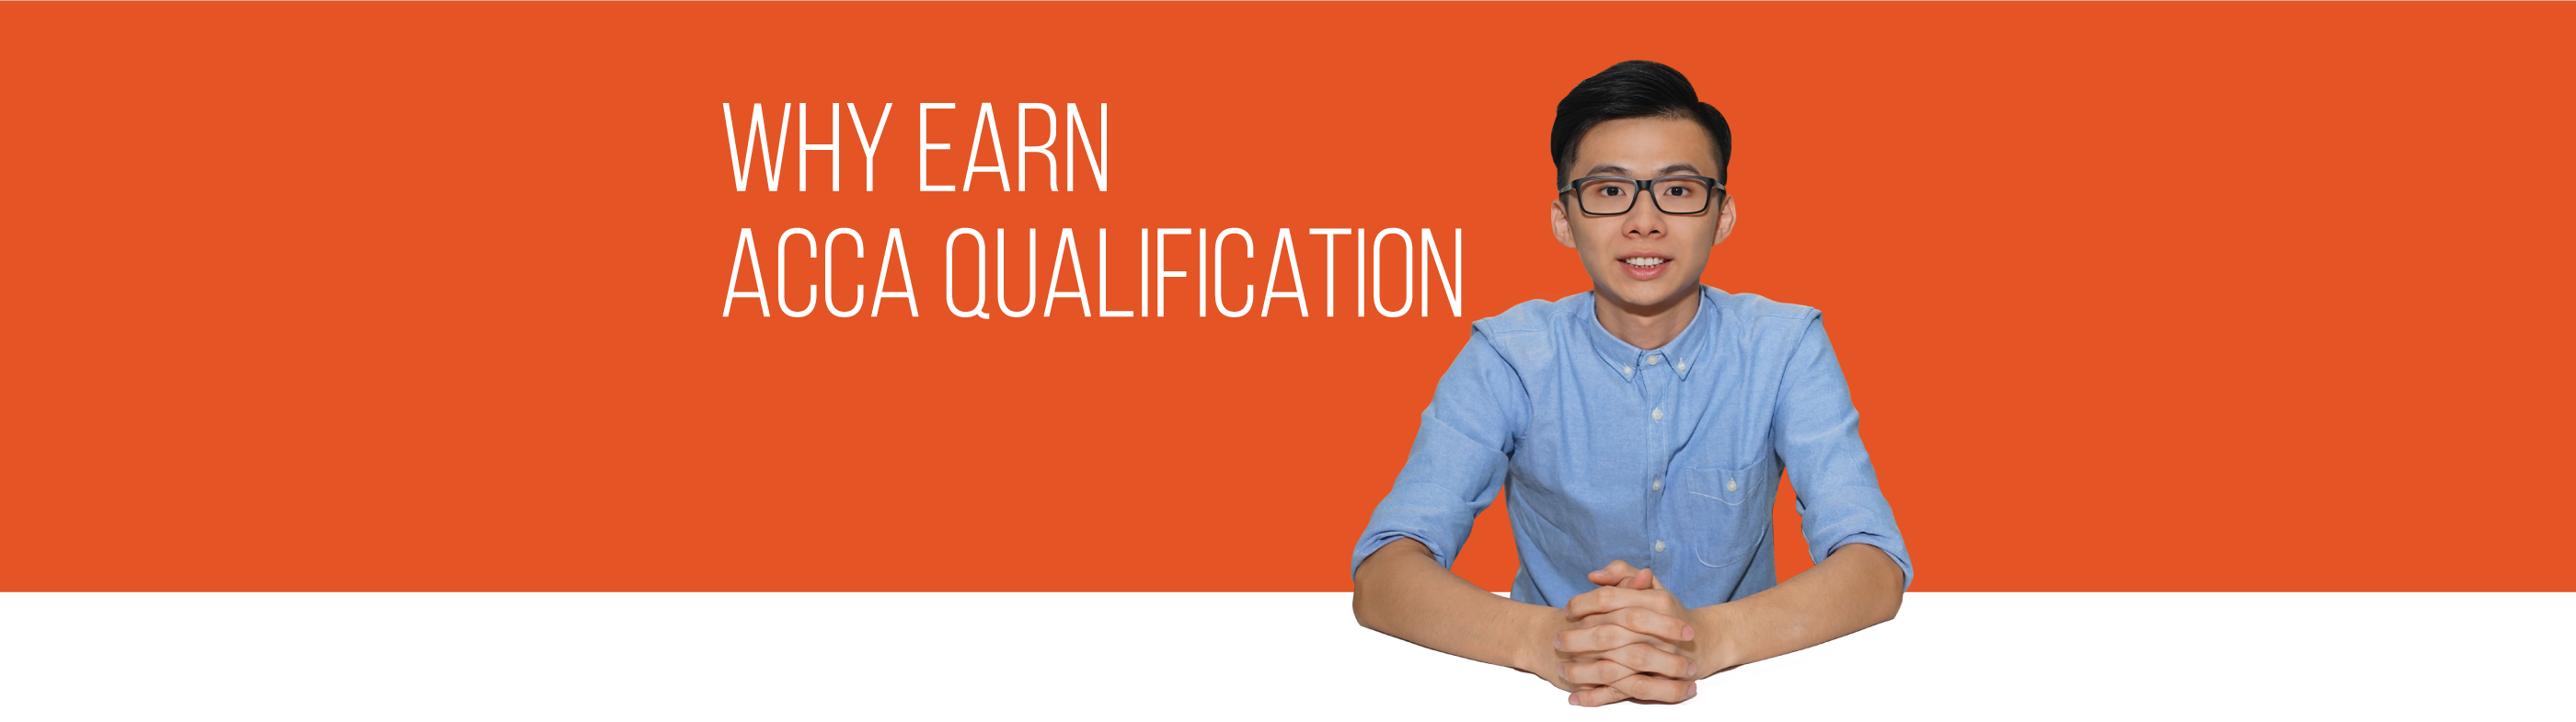 Why Earn ACCA Qualification?